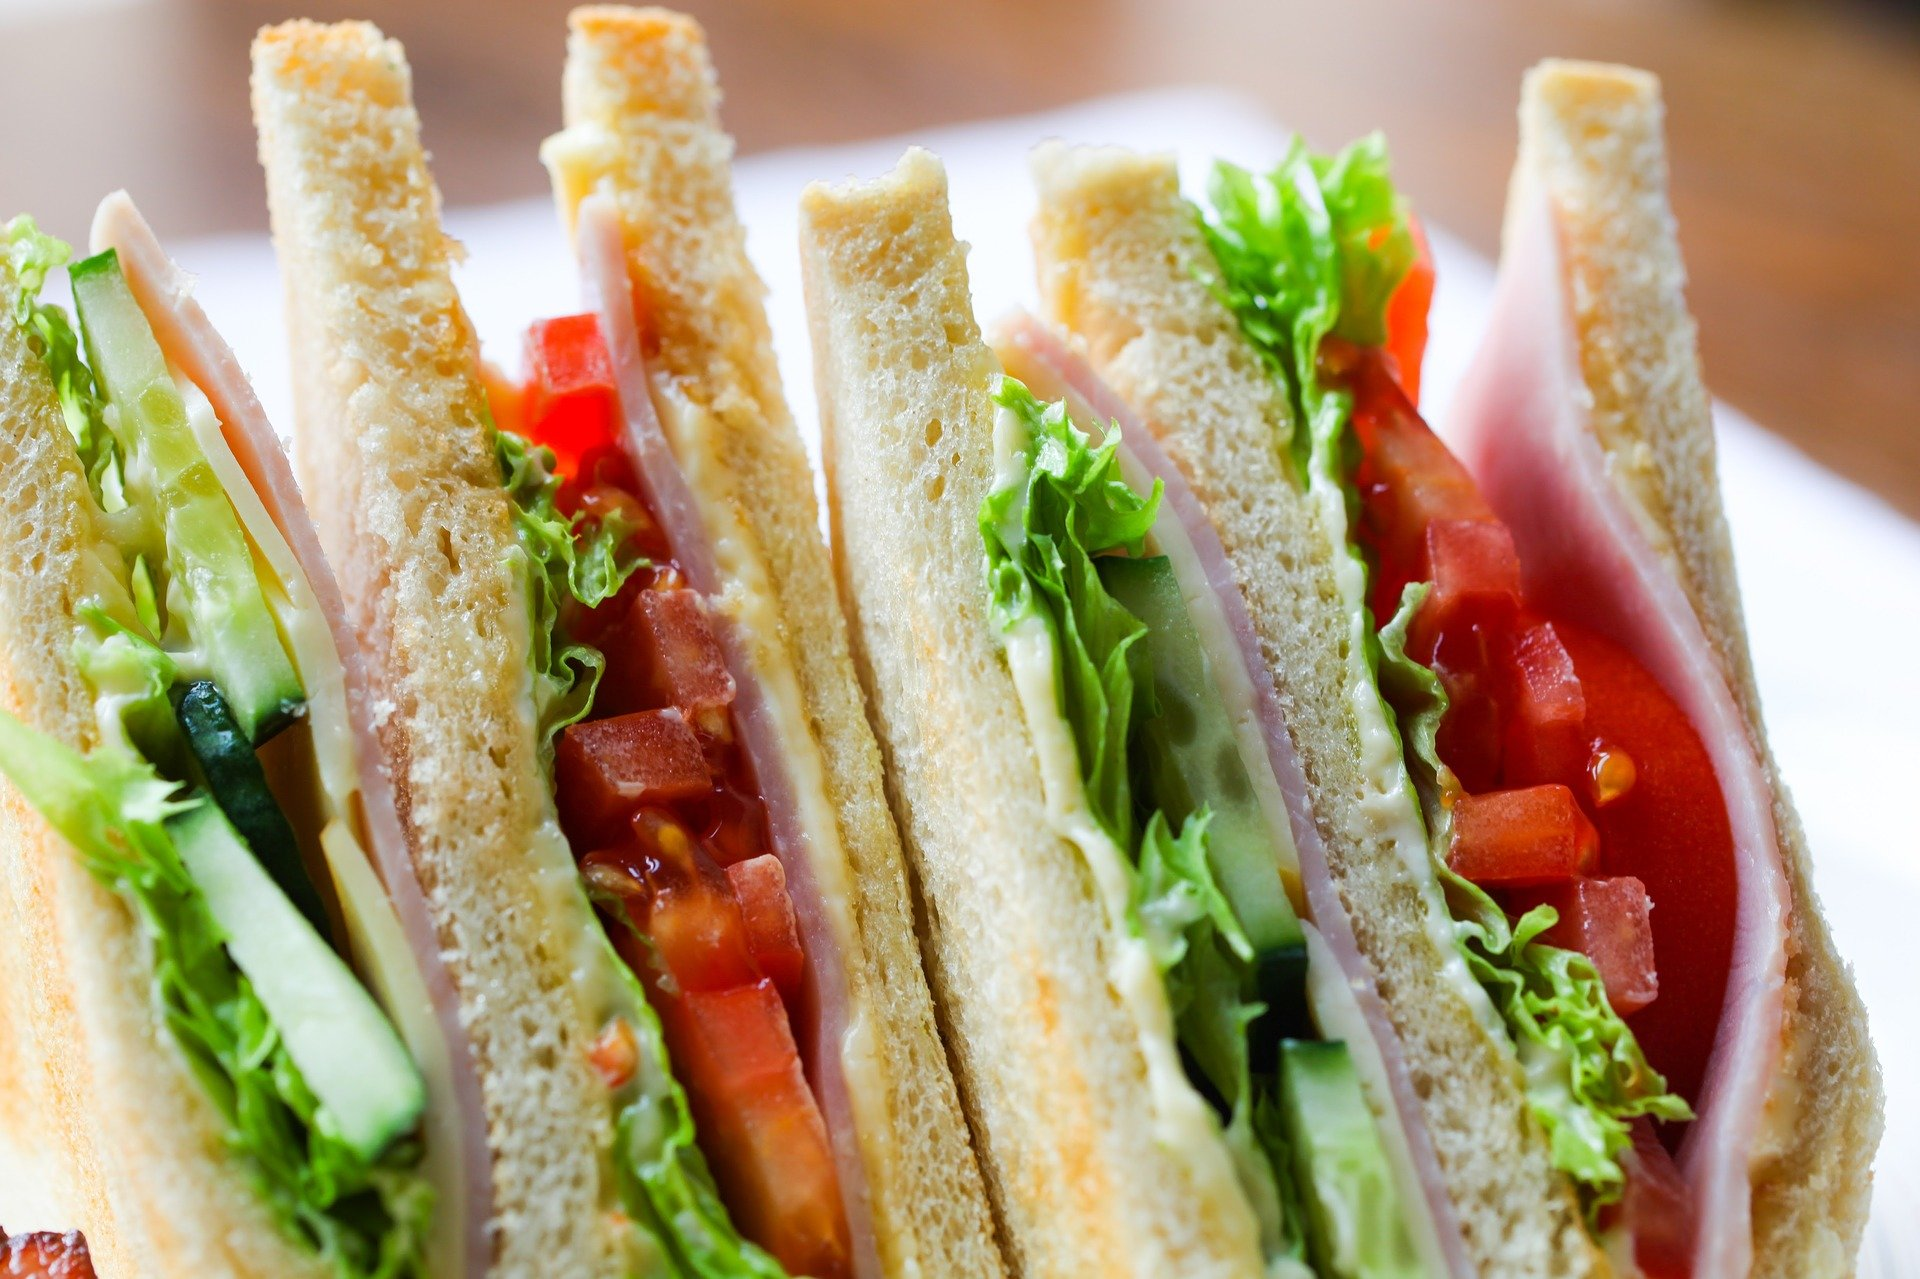 Is your sandwich bad for the environment credit cc0 public domain nvjuhfo Choice Image